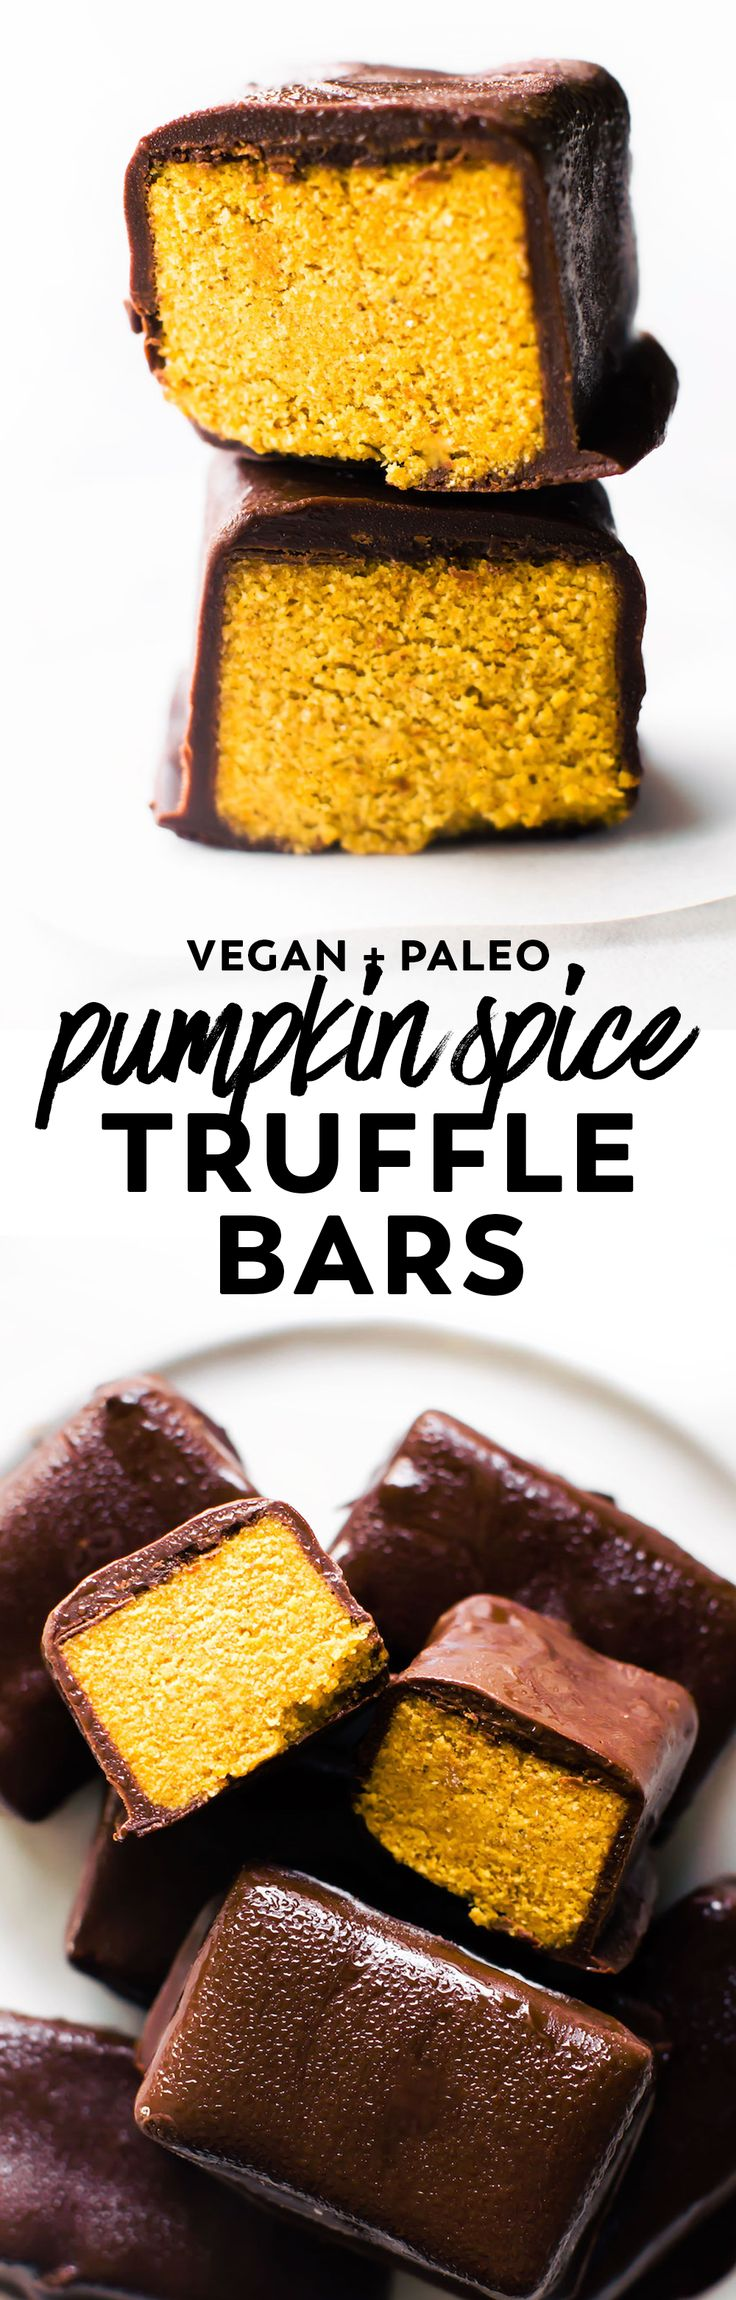 Homemade Pumpkin Spice Truffle Bars with a fluffy date-sweetened filling and decadent chocolate shell. No trick just a healthier halloween treat! #vegan #paleo #pumpkin